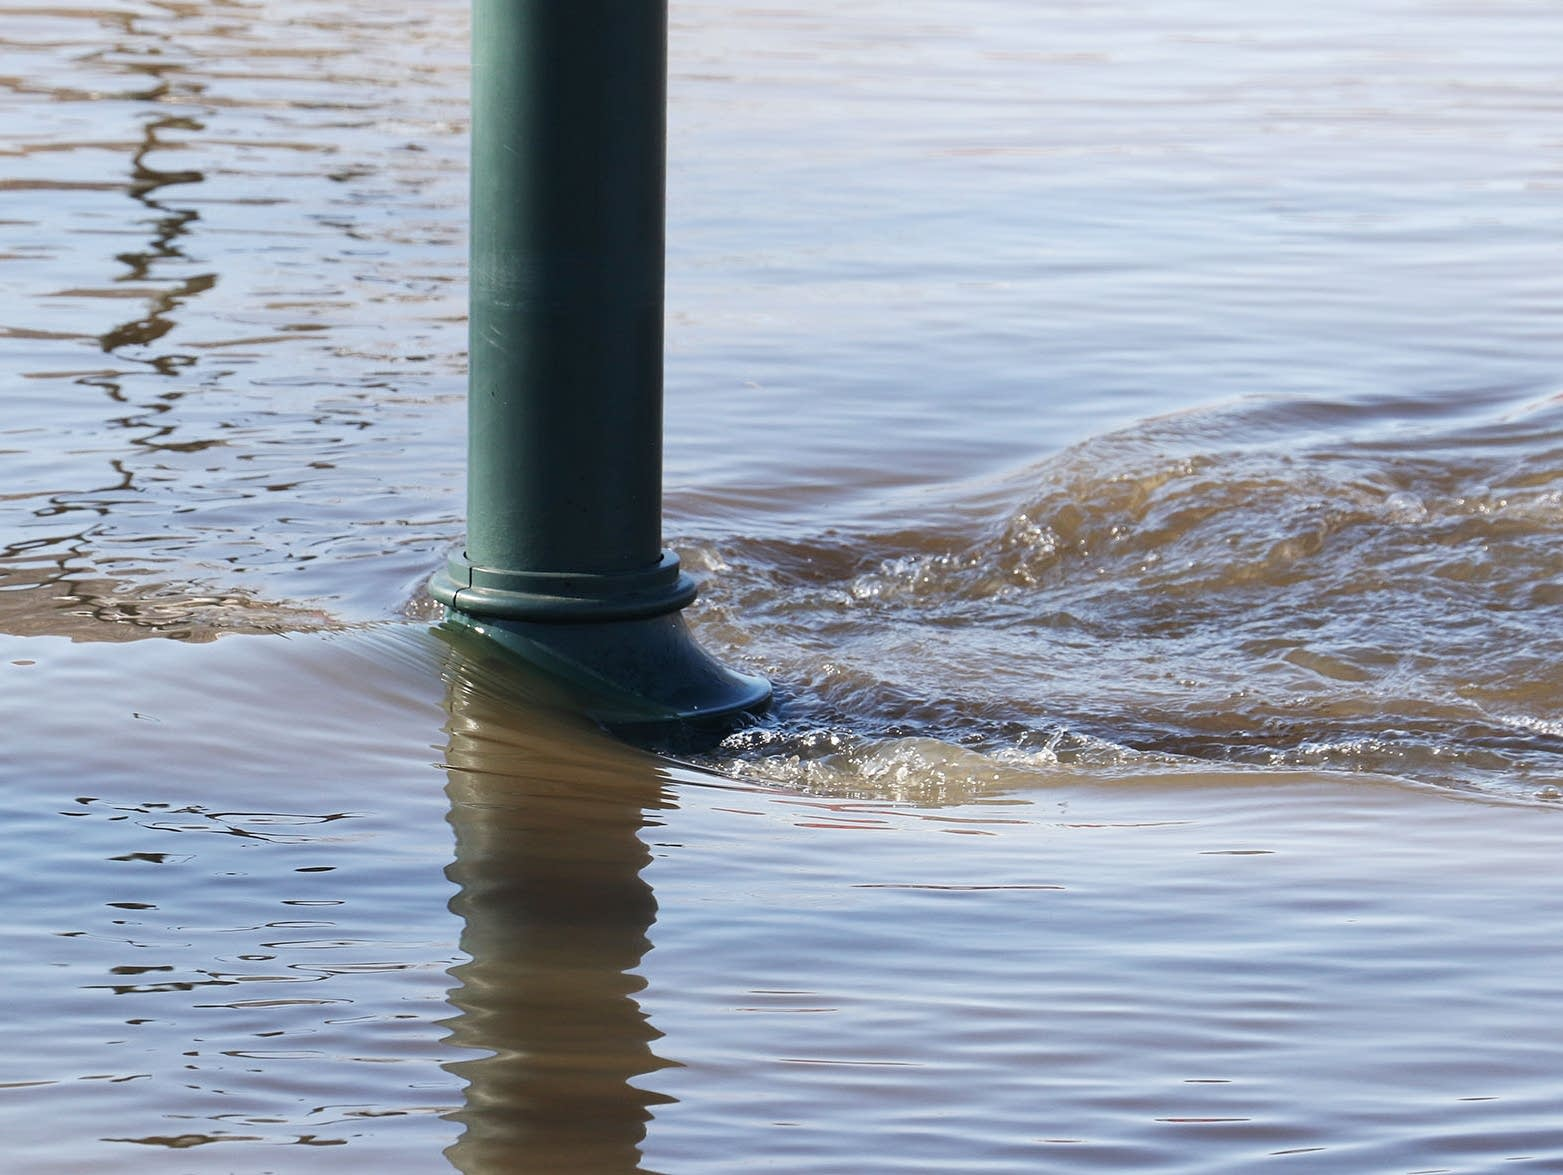 The current of the Mississippi River is visible at a flooded lamppost